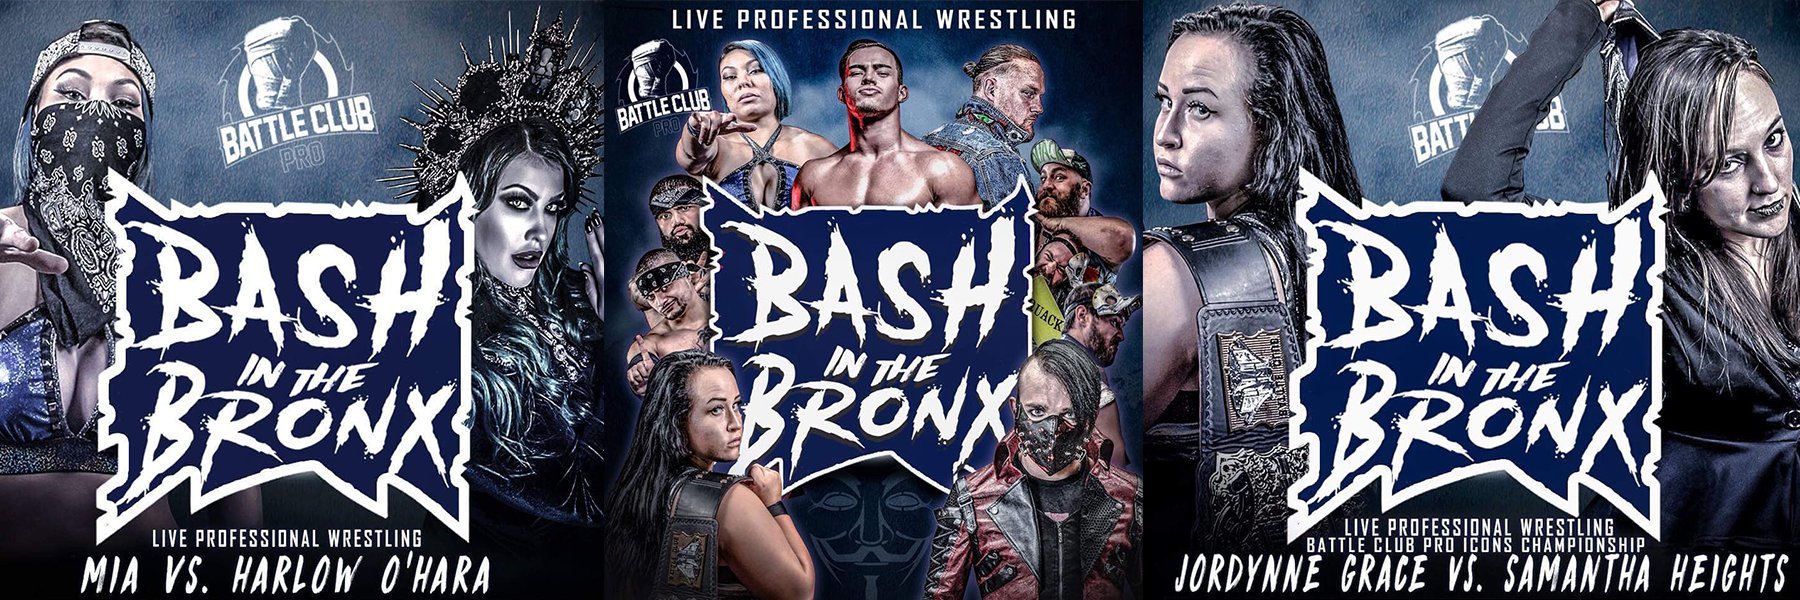 New Battle Club Pro w/ Mia Yim, Jordynne Grace, Jimmy Havoc, LAX, Harlow